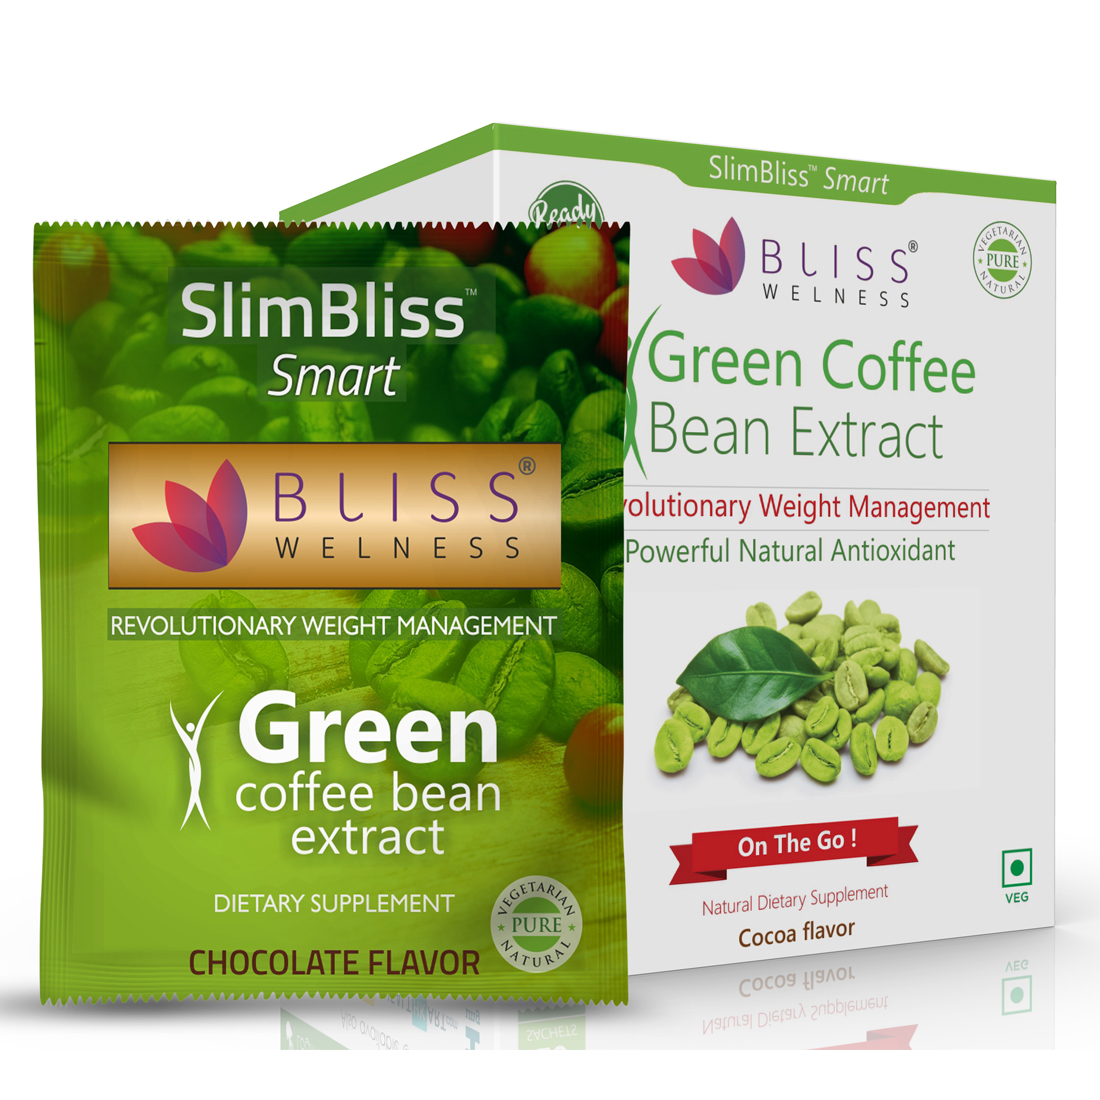 Bliss Welness On-the-Go 'SlimBliss Smart' Green Coffee Bean Extract 50% CGA Ready-to-Eat Cocoa Flavor- 20 Servings